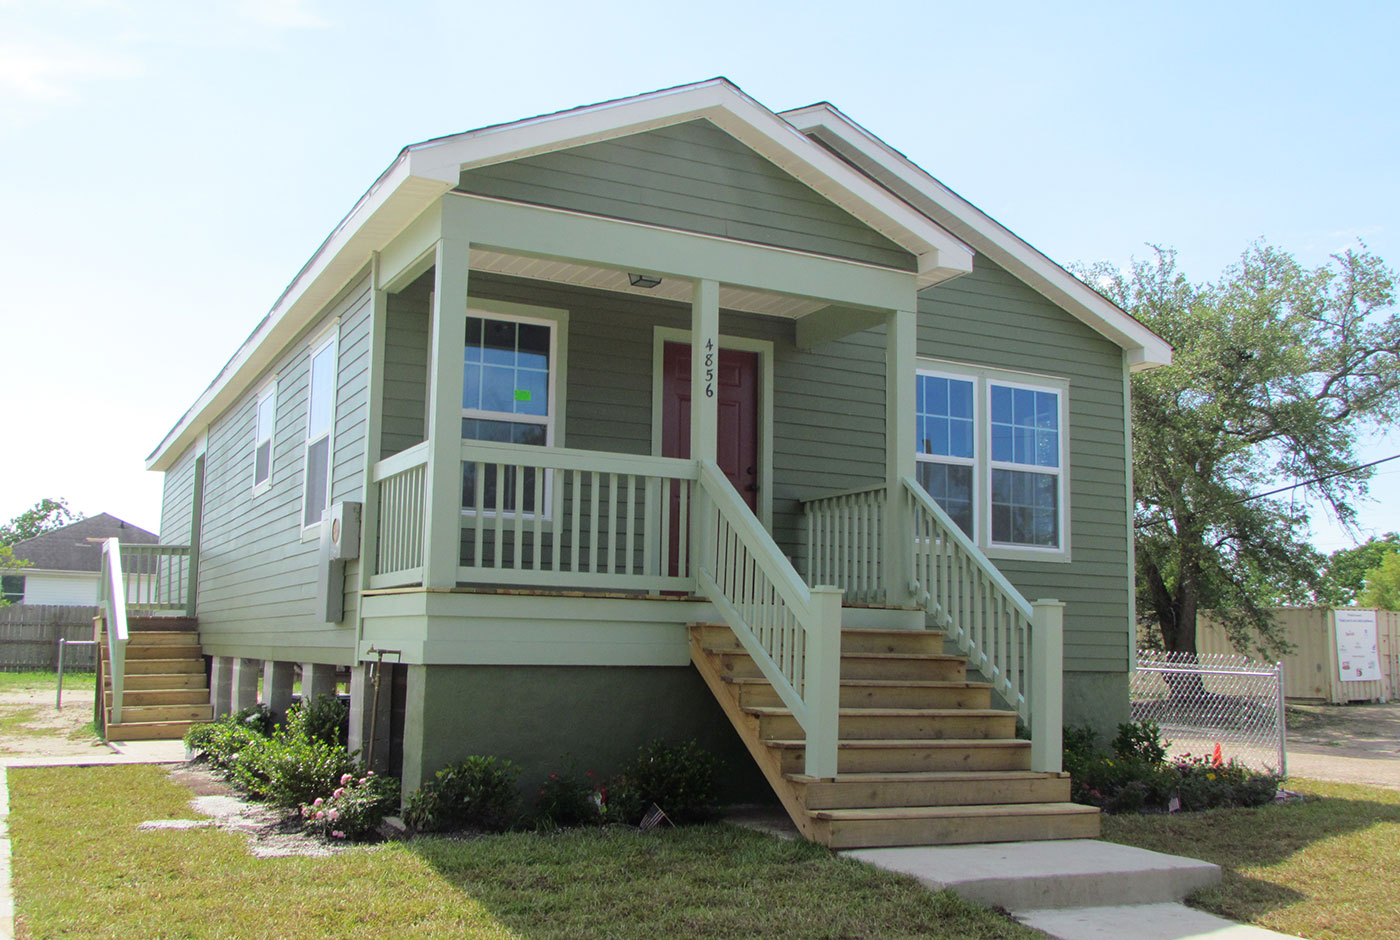 Home features new orleans area habitat for humanity for Affordable house for you